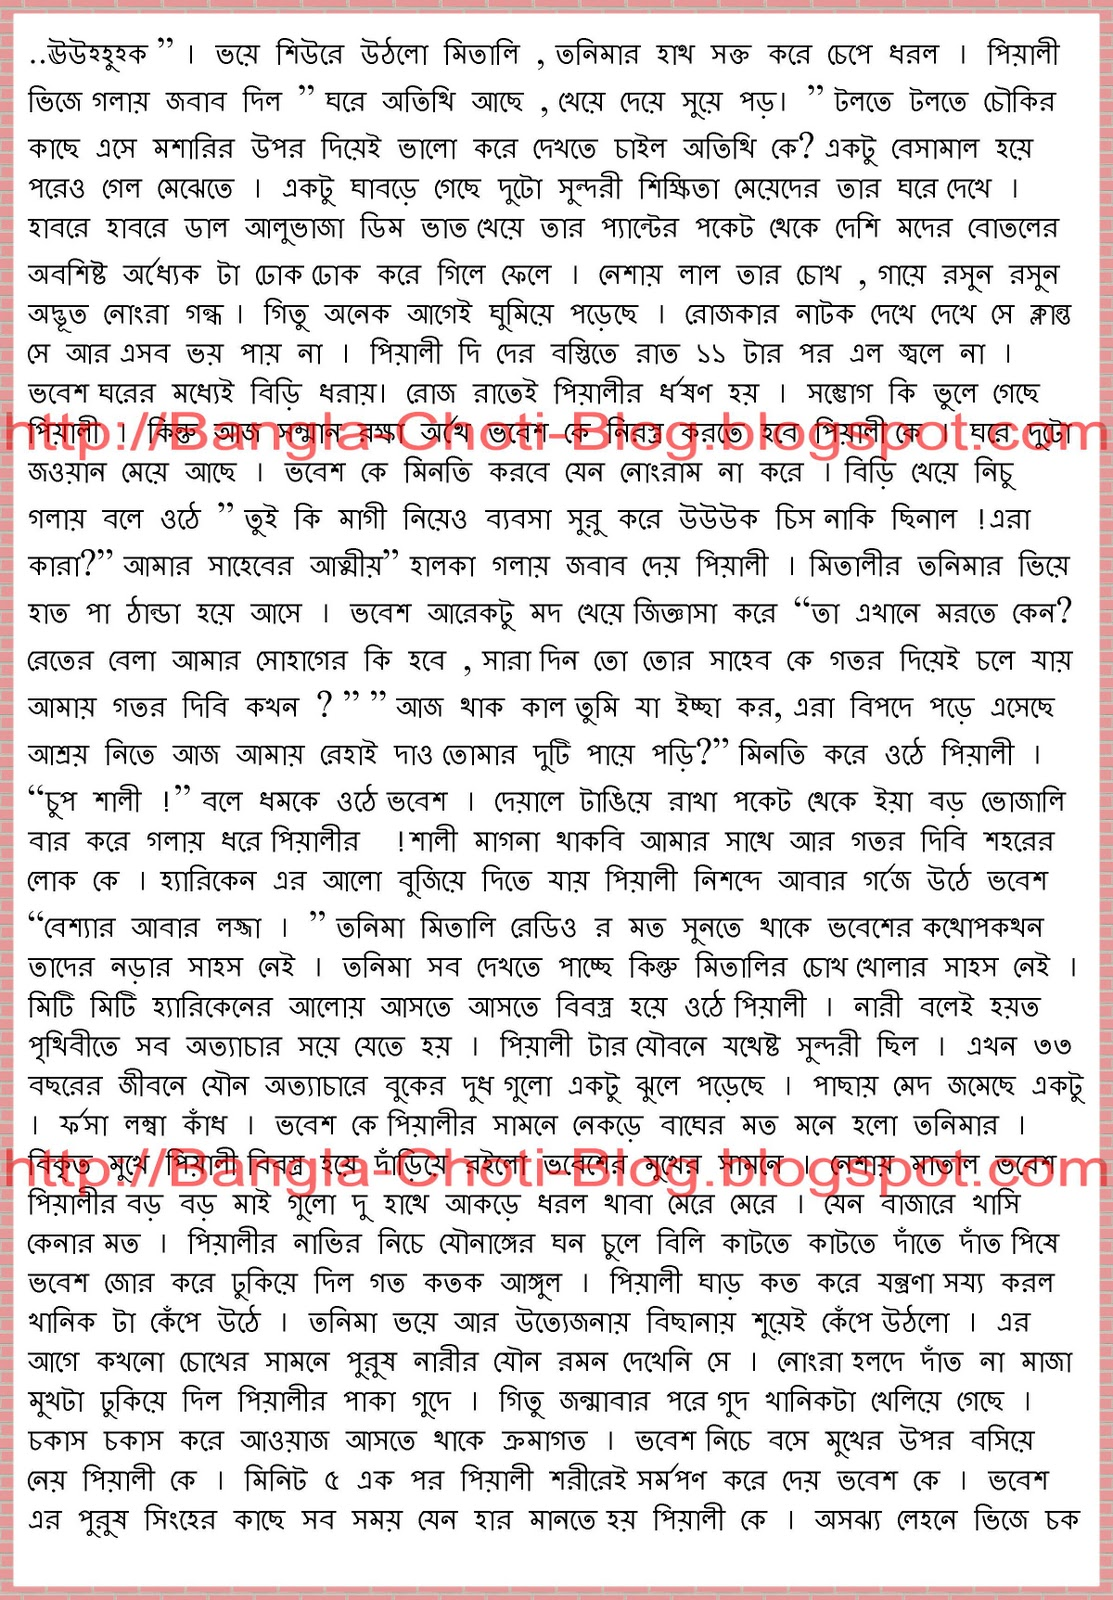 New Bangla Font Choti Golpo Download 2012  Bangladeshi -2538